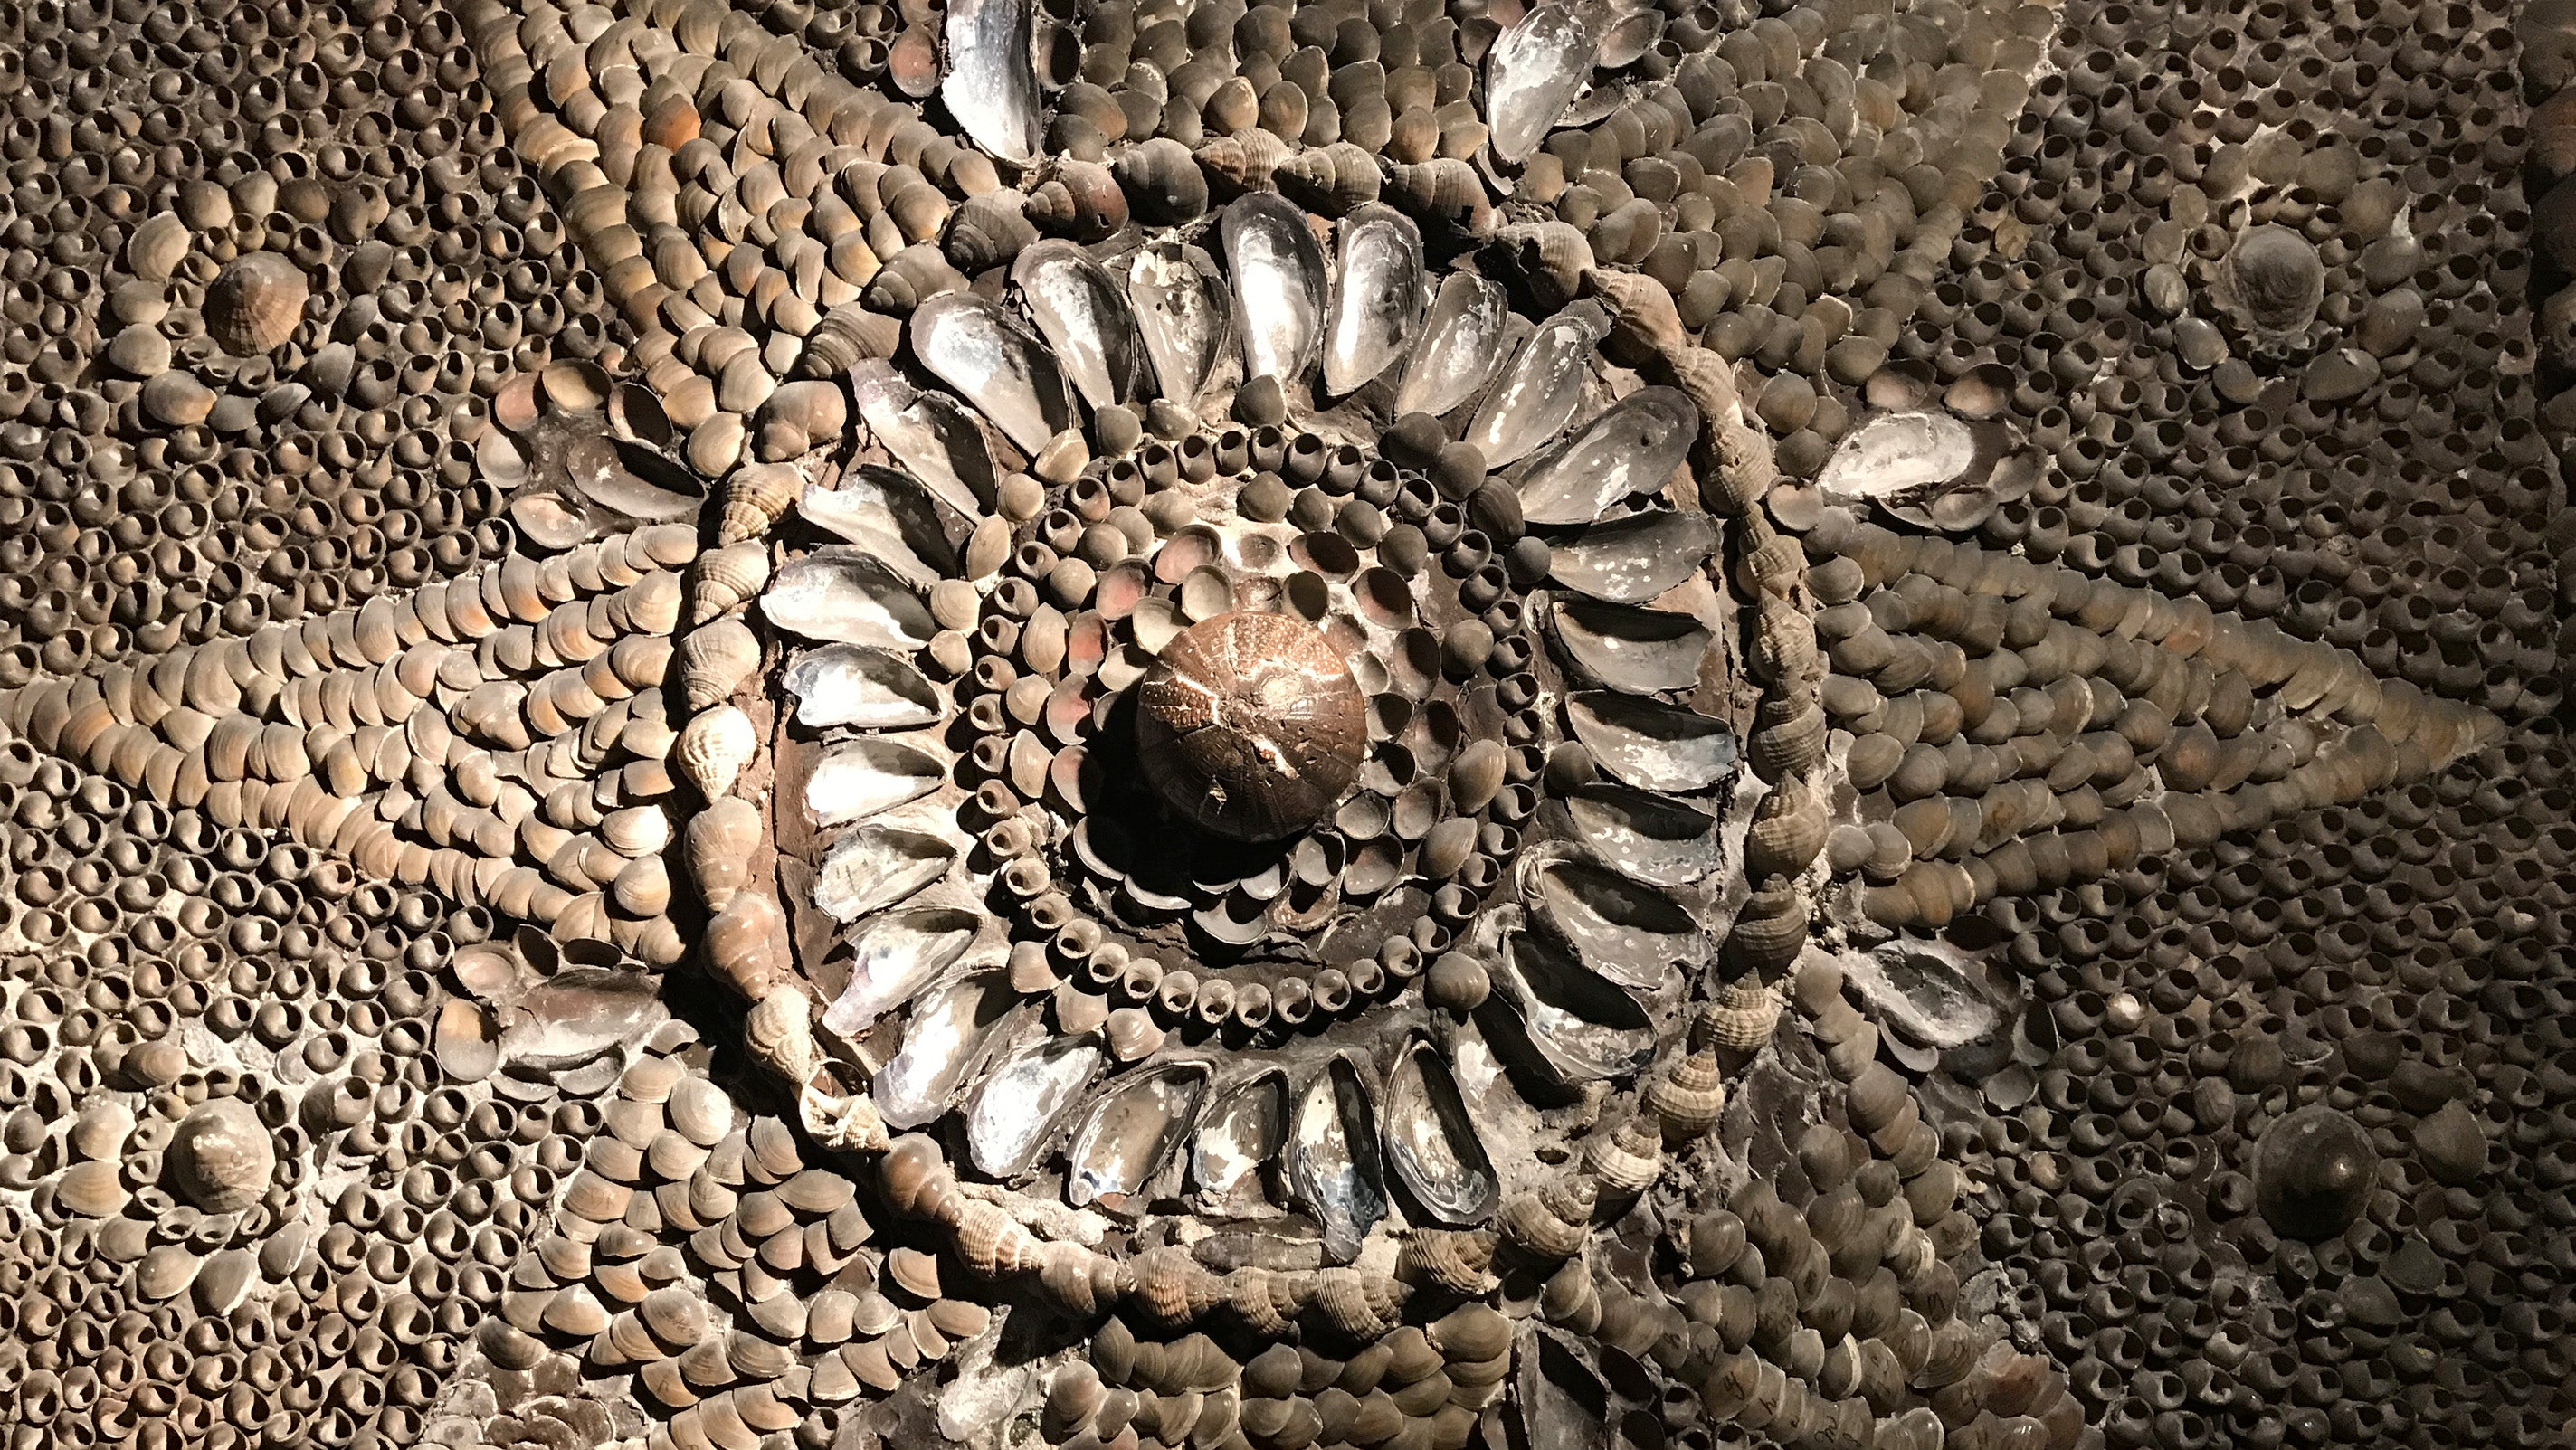 shell grotto margate seaside travel staycation